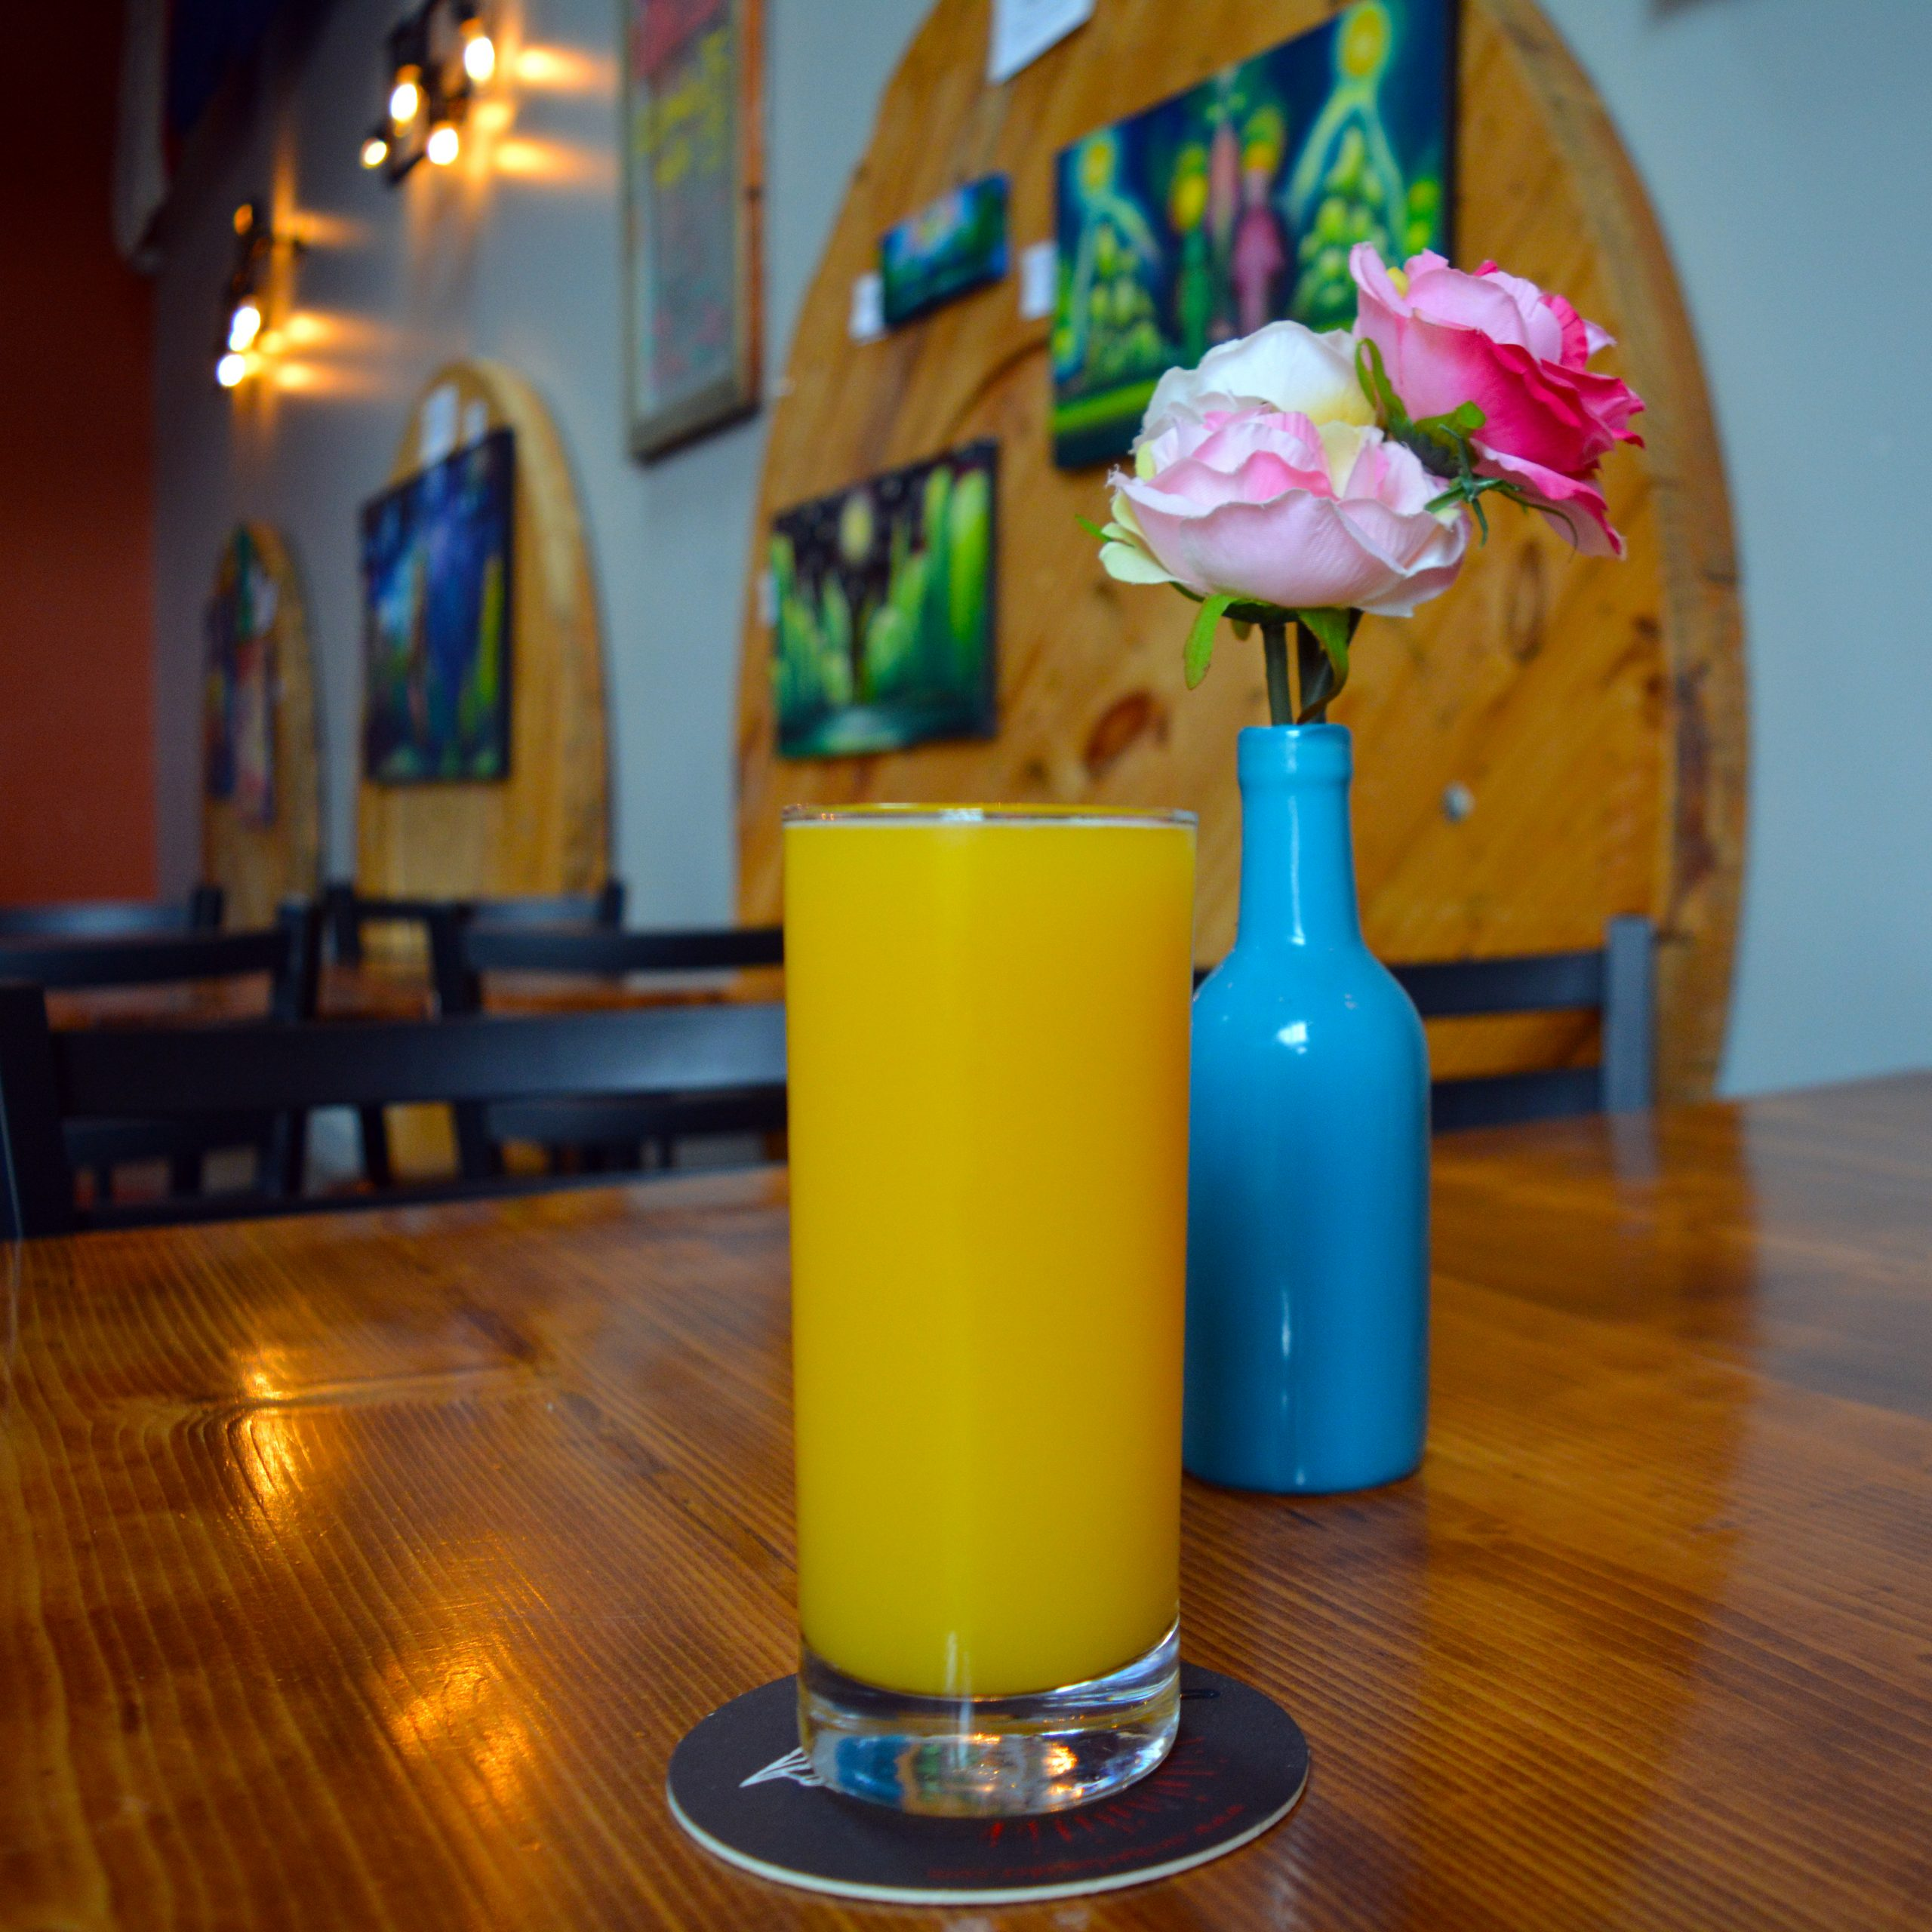 A photo of a mimosa with artwork and flowers in the background